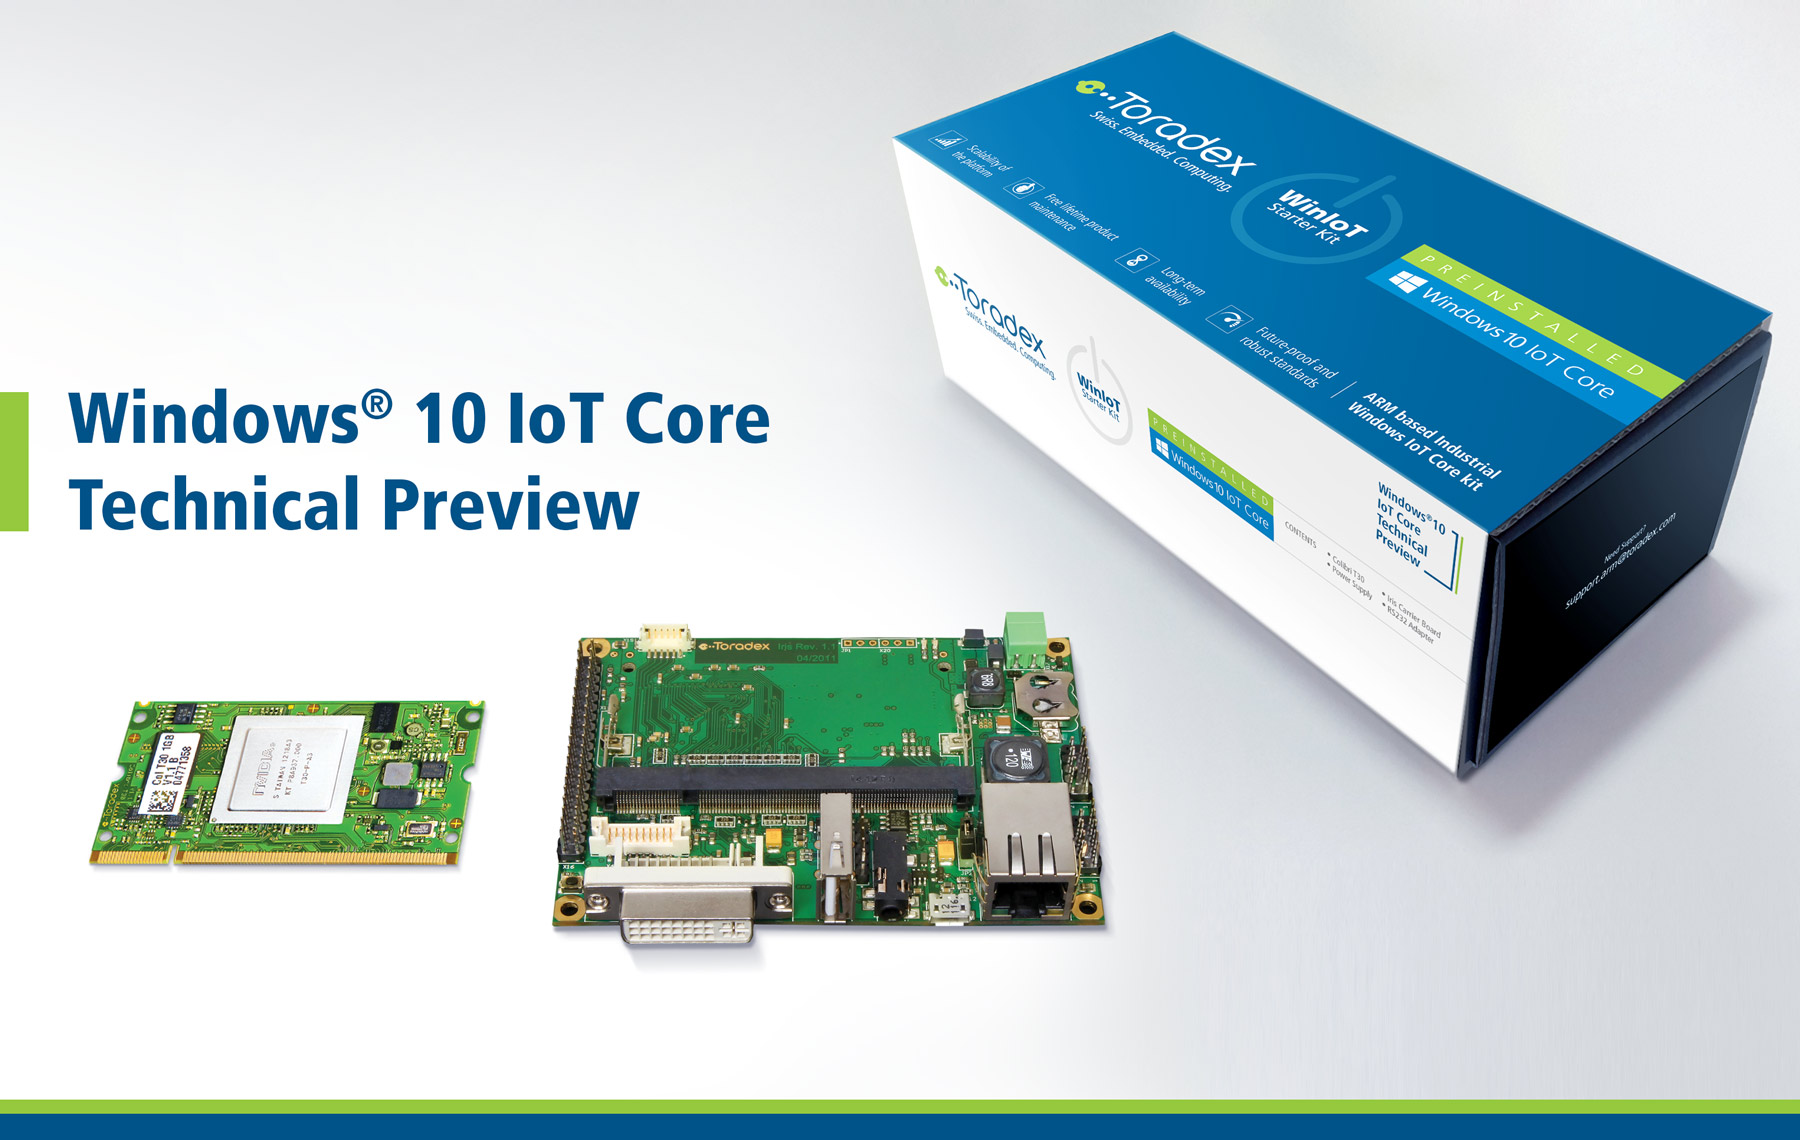 Toradex - Windows 10 IoT Core Technical Preview